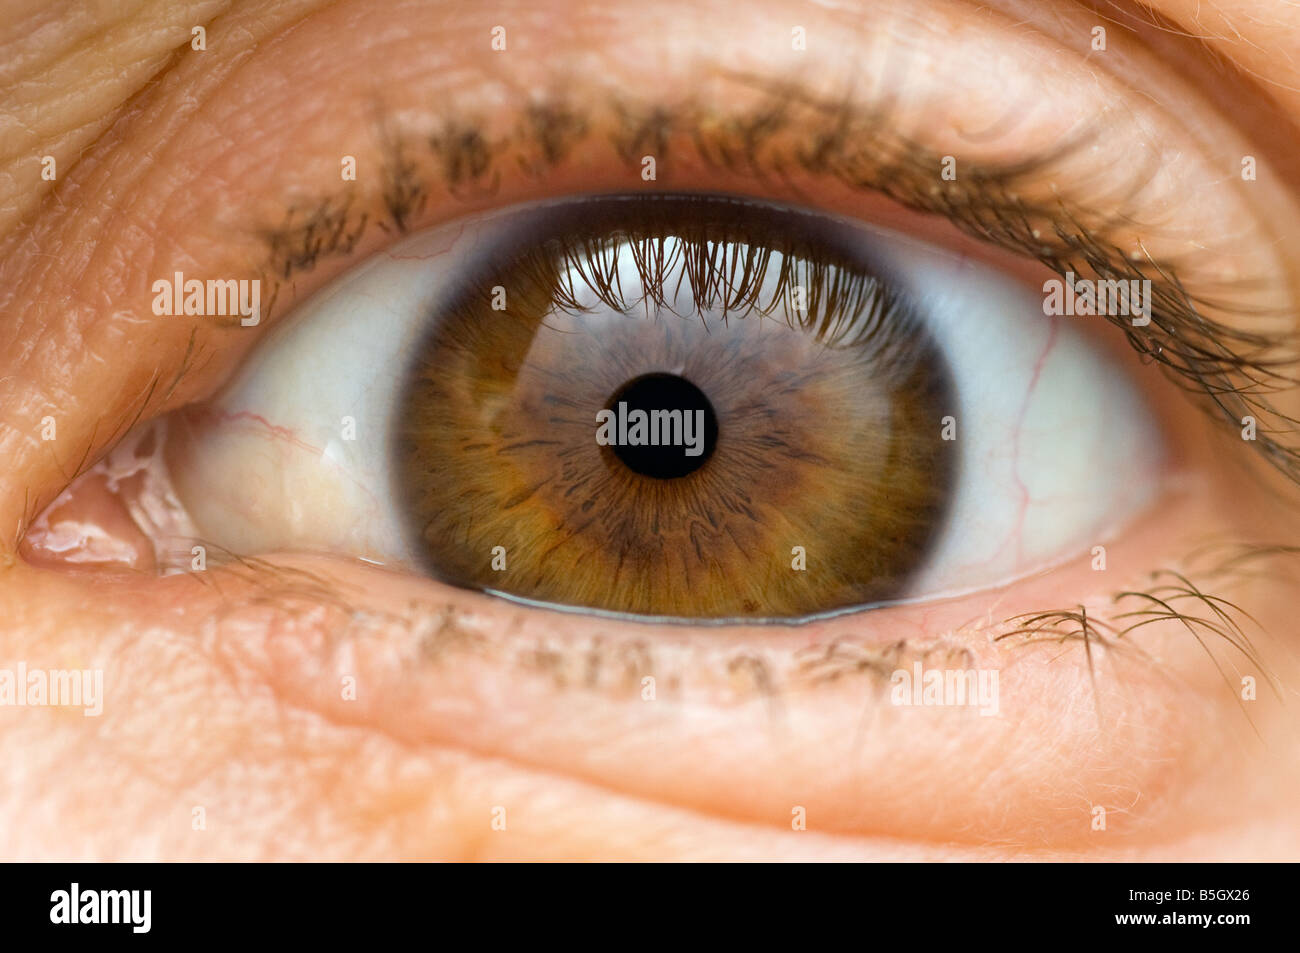 an eye close up - Stock Image